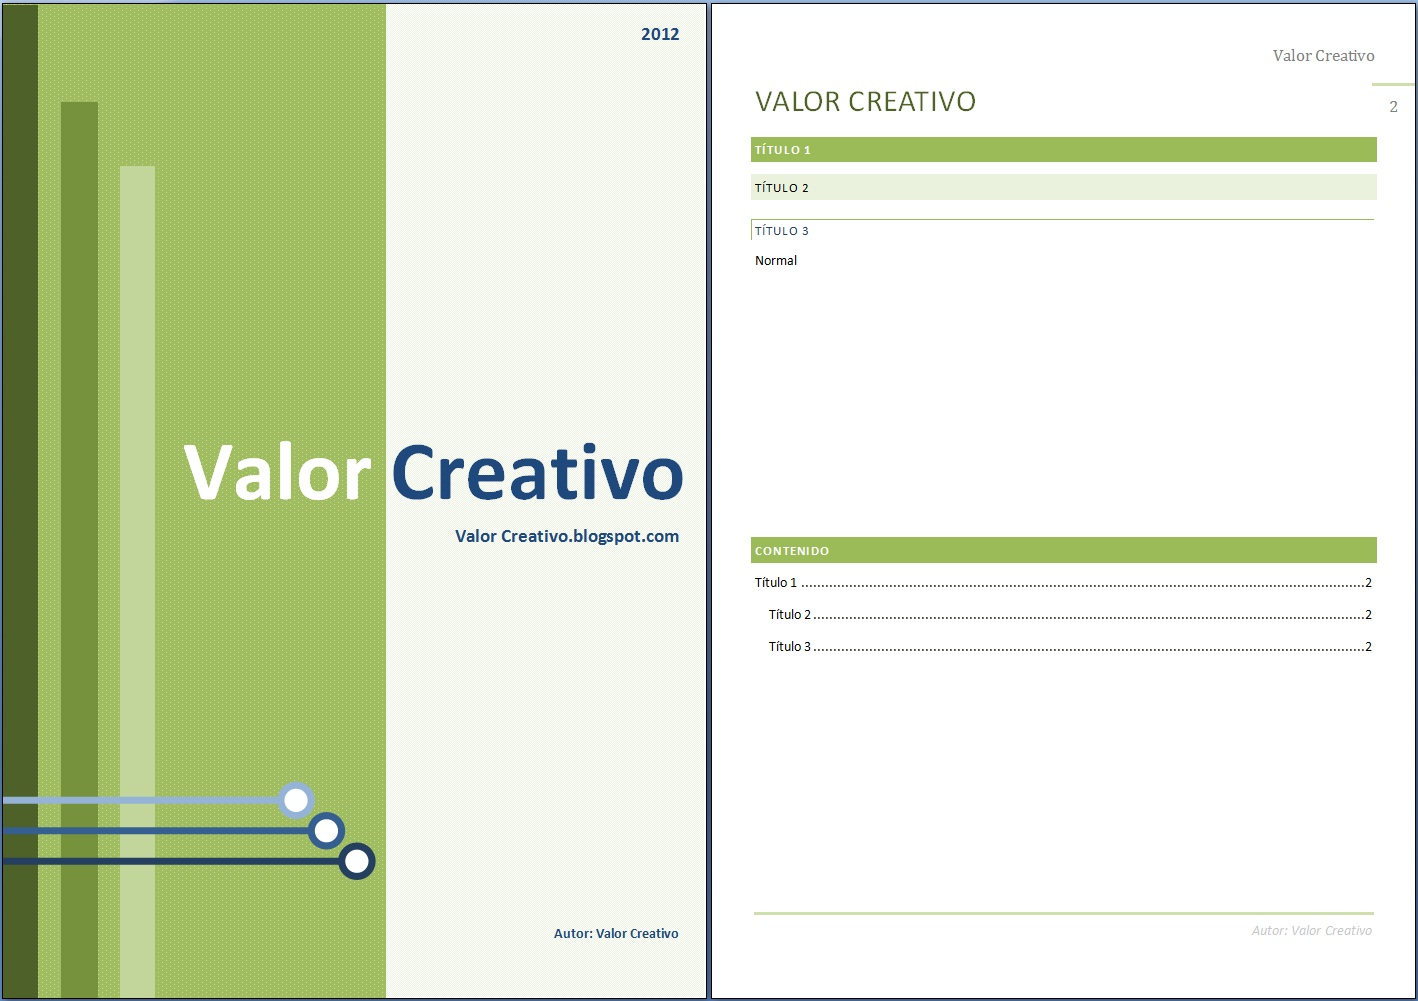 Valor Creativo: Plantilla Word 2003, 2007 y 2010 - Junio 2012